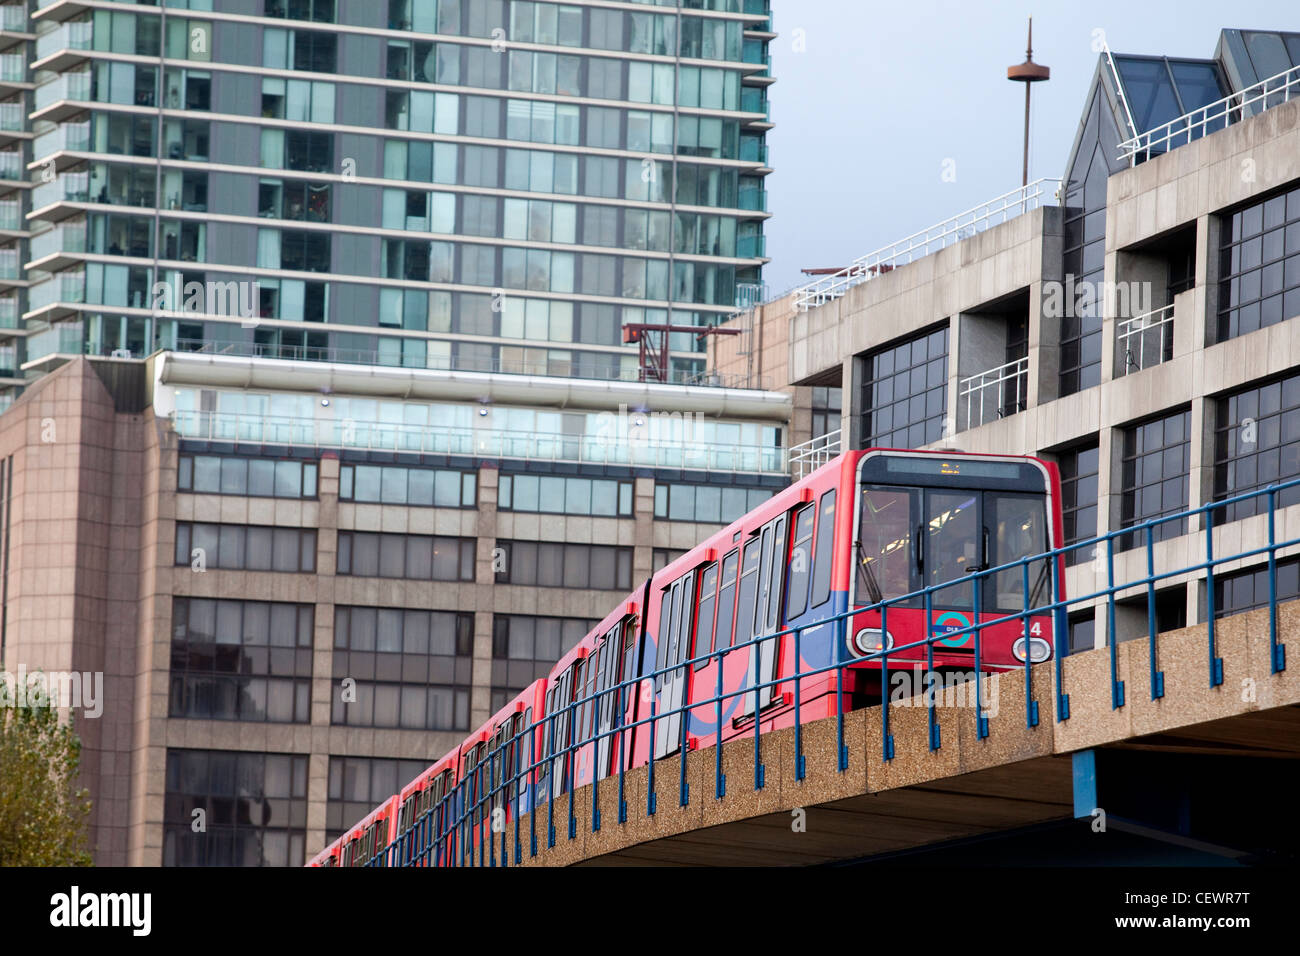 The Docklands Light Railway (DLR) is an automated light rail system serving the Docklands area of east London. - Stock Image